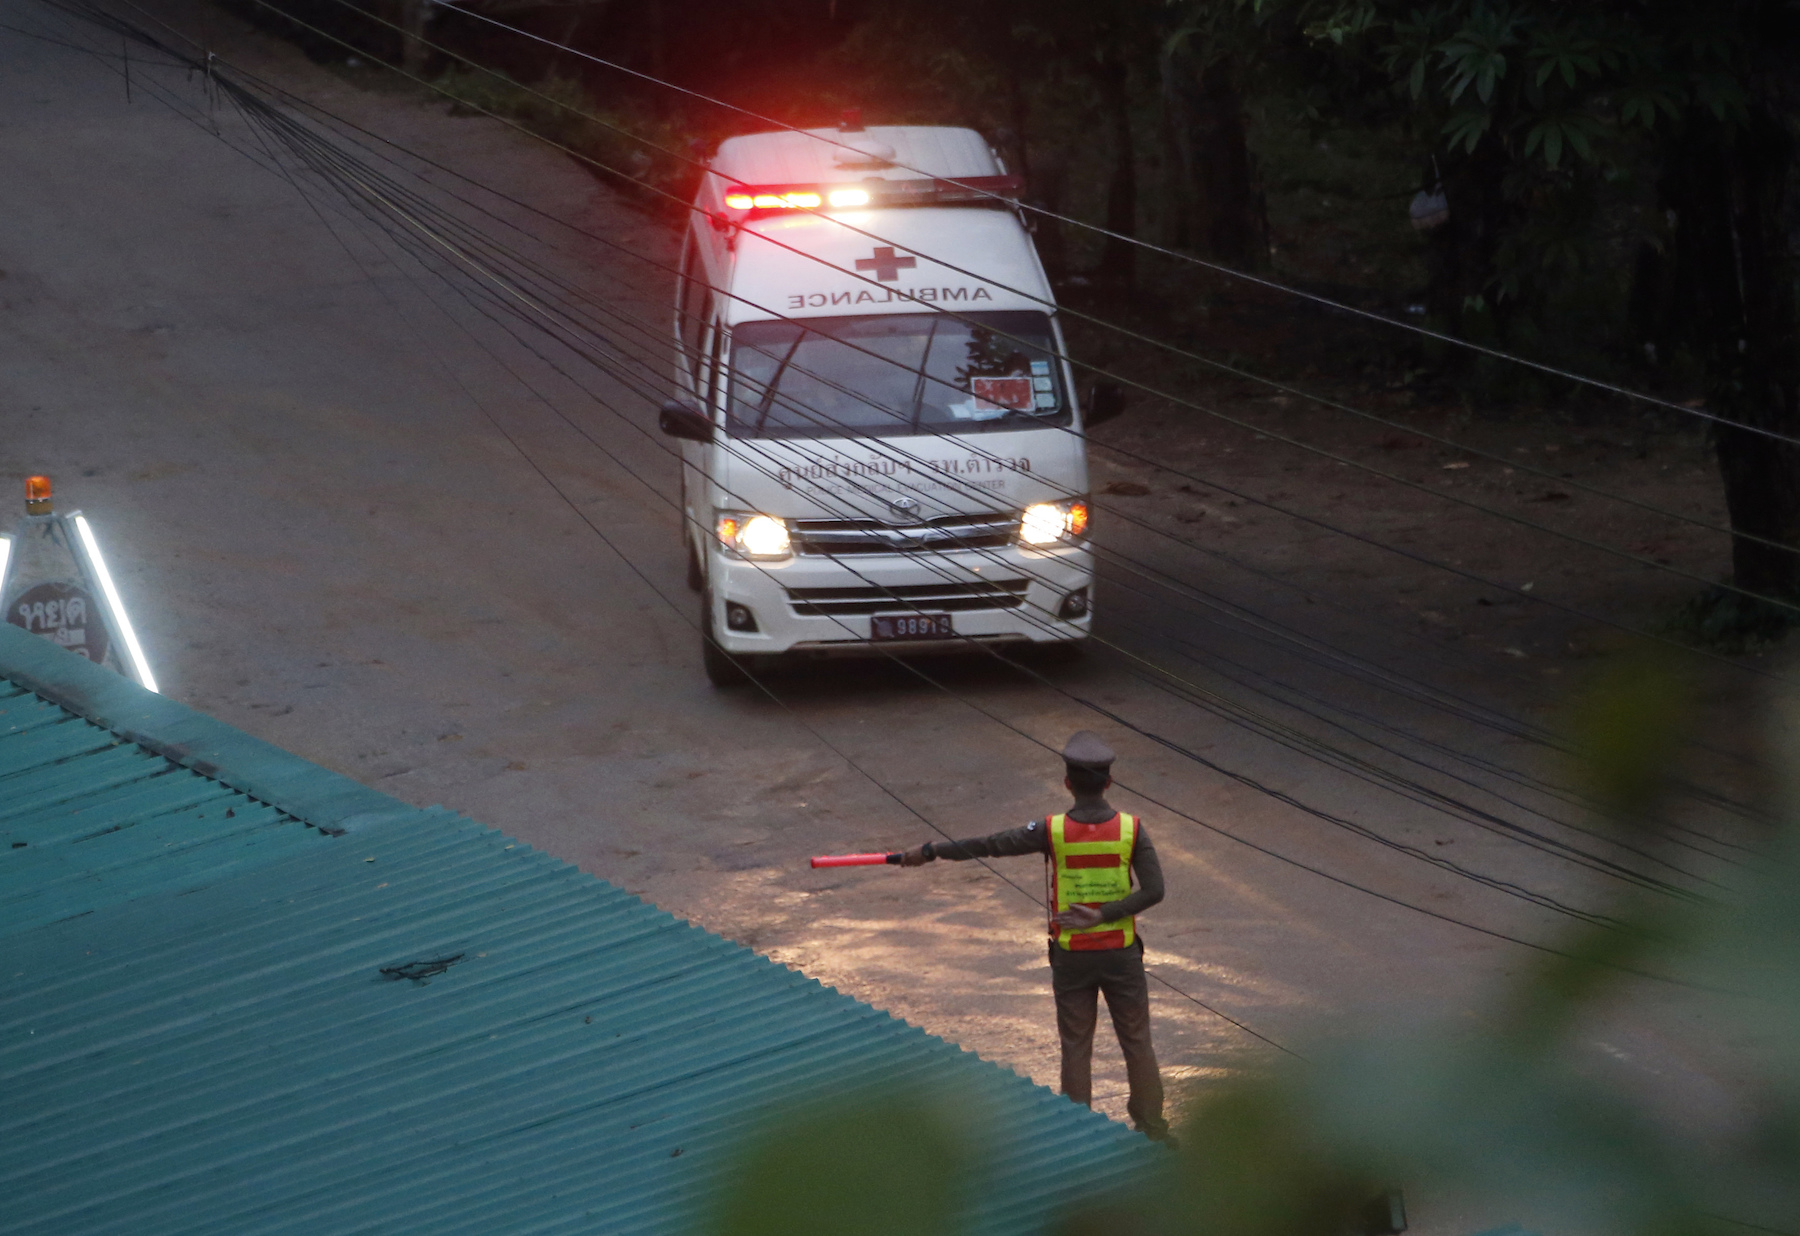 <div class='meta'><div class='origin-logo' data-origin='AP'></div><span class='caption-text' data-credit='AP Photo/Sakchai Lalit'>Two ambulances are seen leaving the cave in northern Thailand hours after operations began to rescue trapped youth soccer players.</span></div>